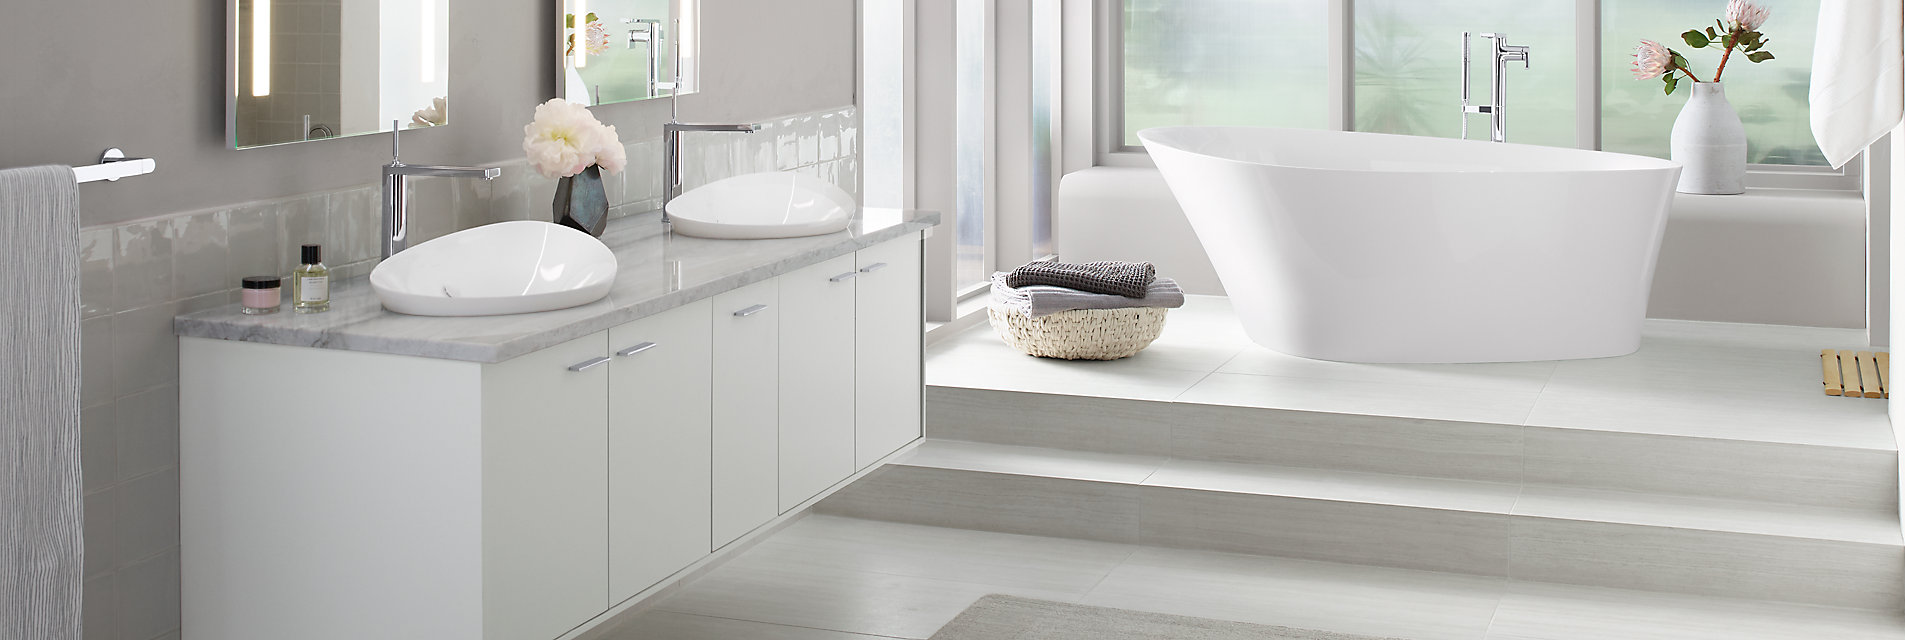 KOHLER | Toilets, Showers, Sinks, Faucets and More for Bathroom ...